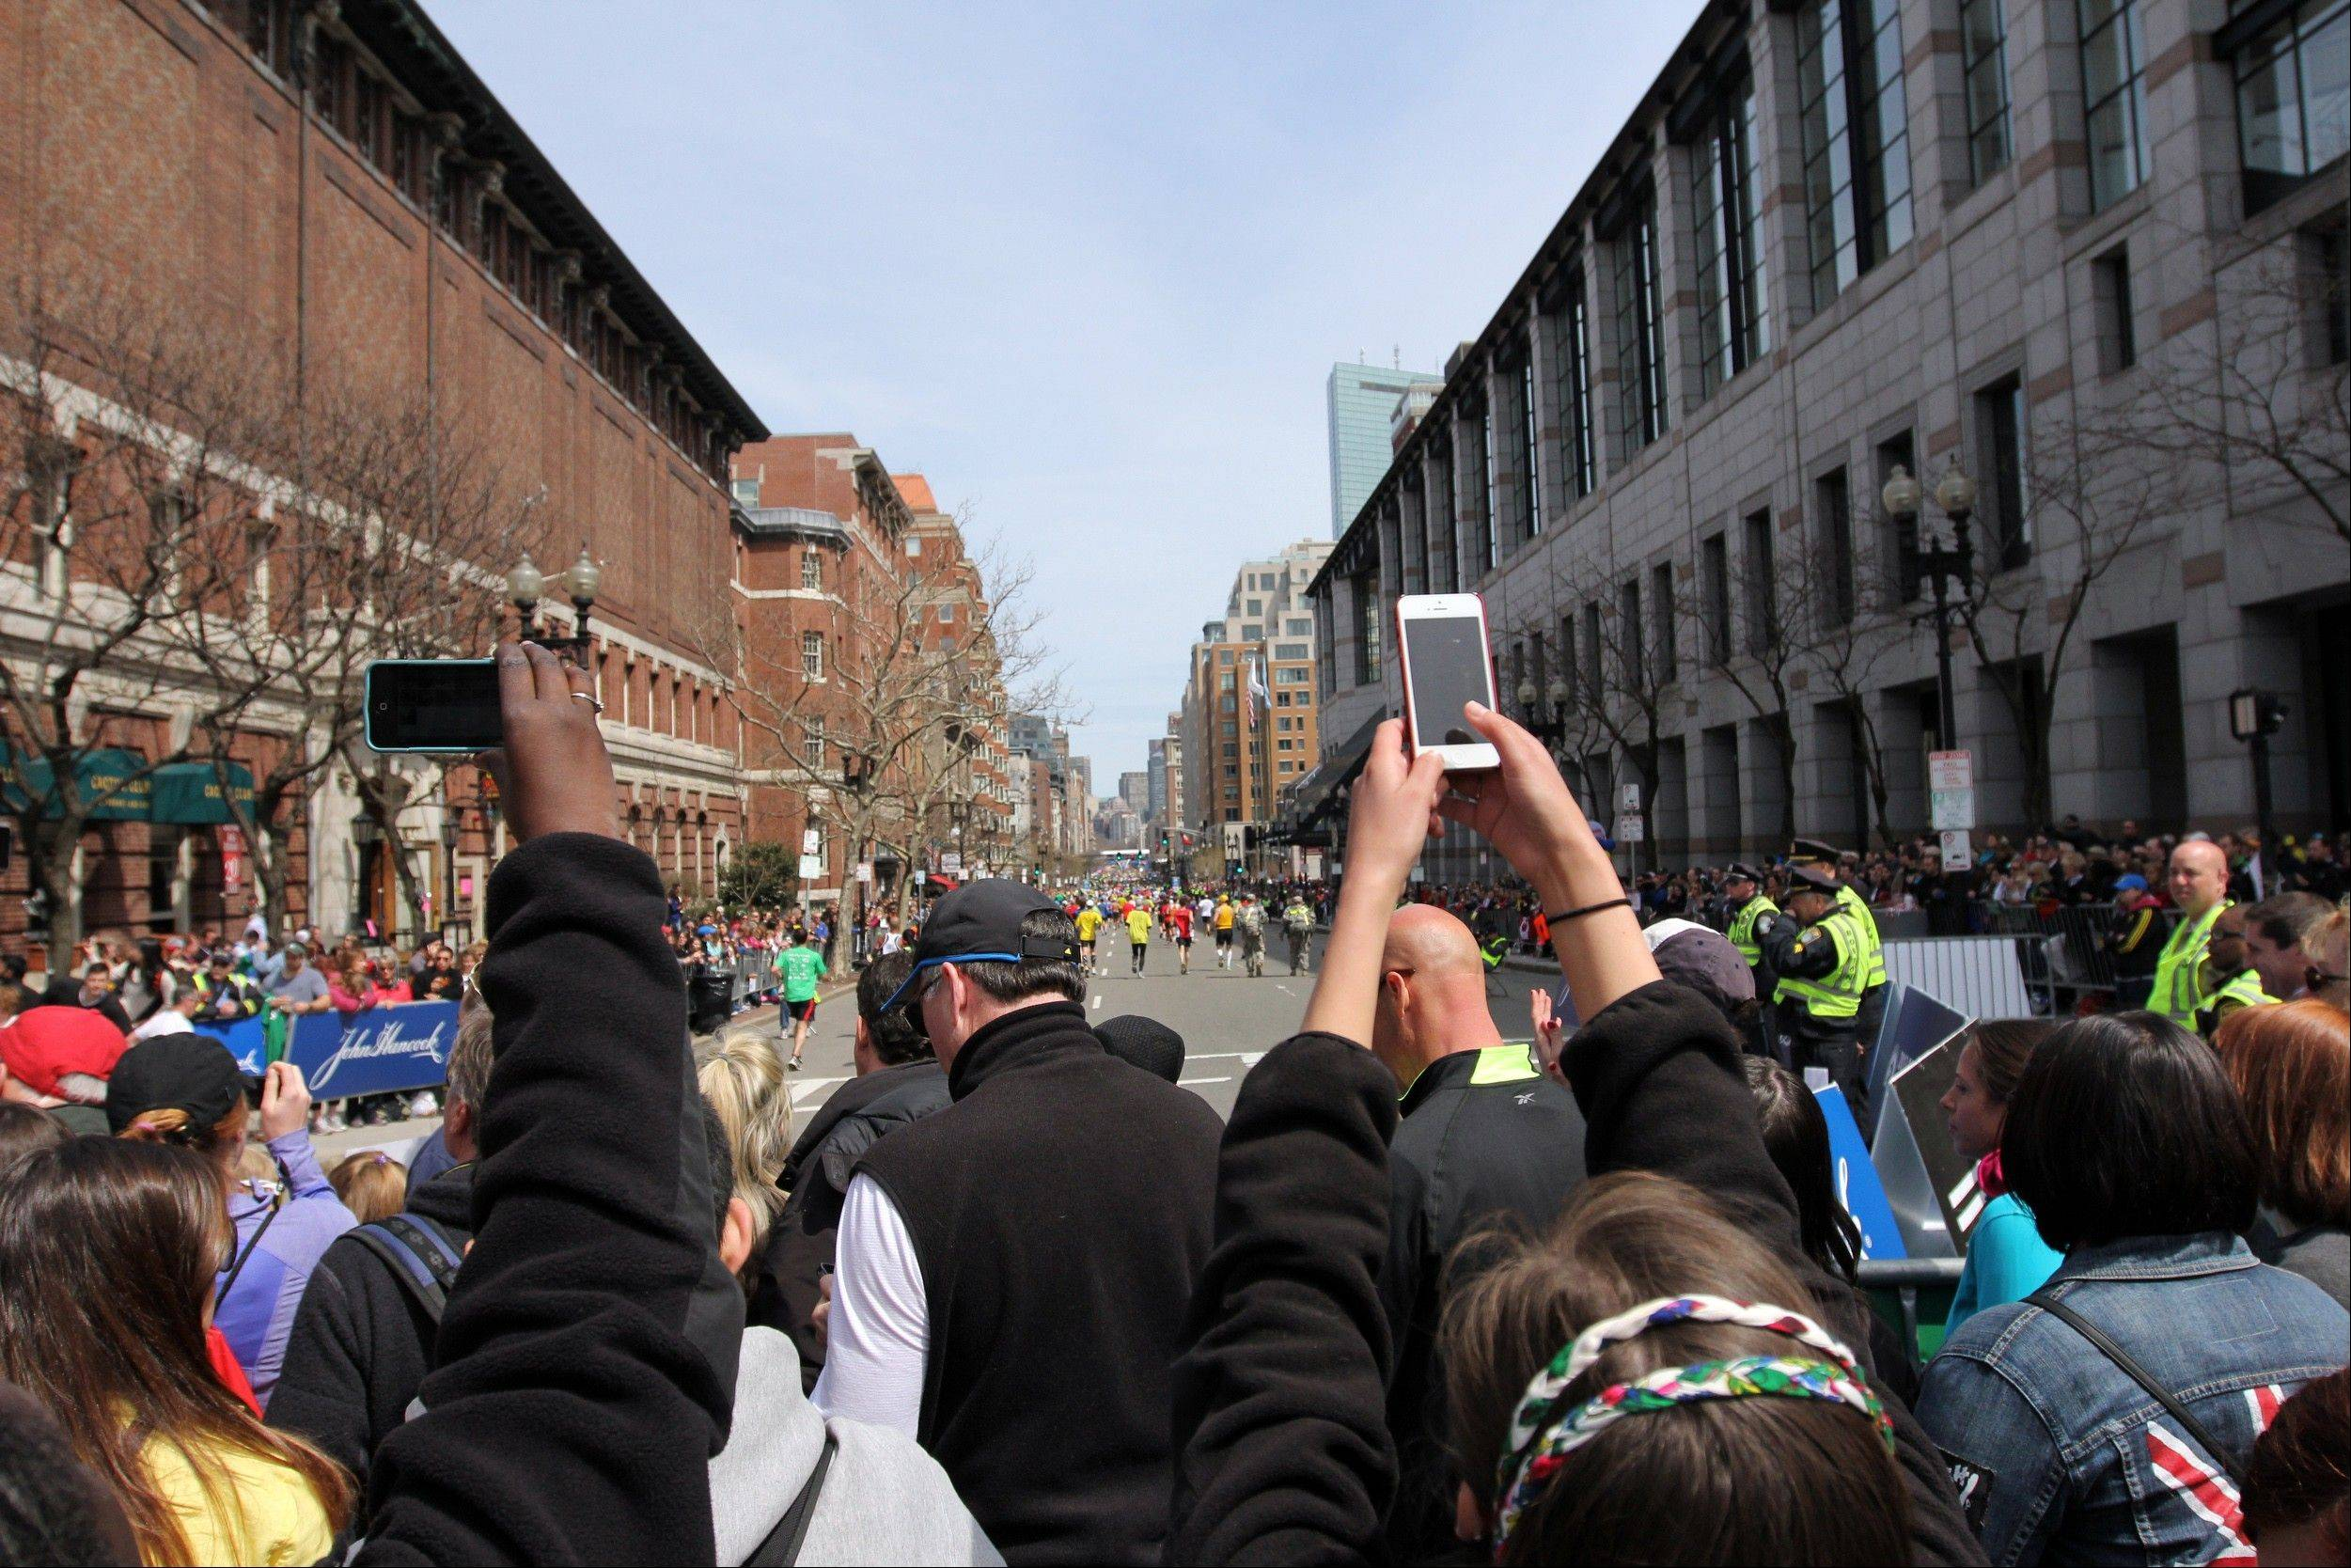 Spectators take pictures with camera phones during the Boston Marathon in Boston, before two bombs exploded at the finish line in an attack that killed 3 people and wounded over 170.